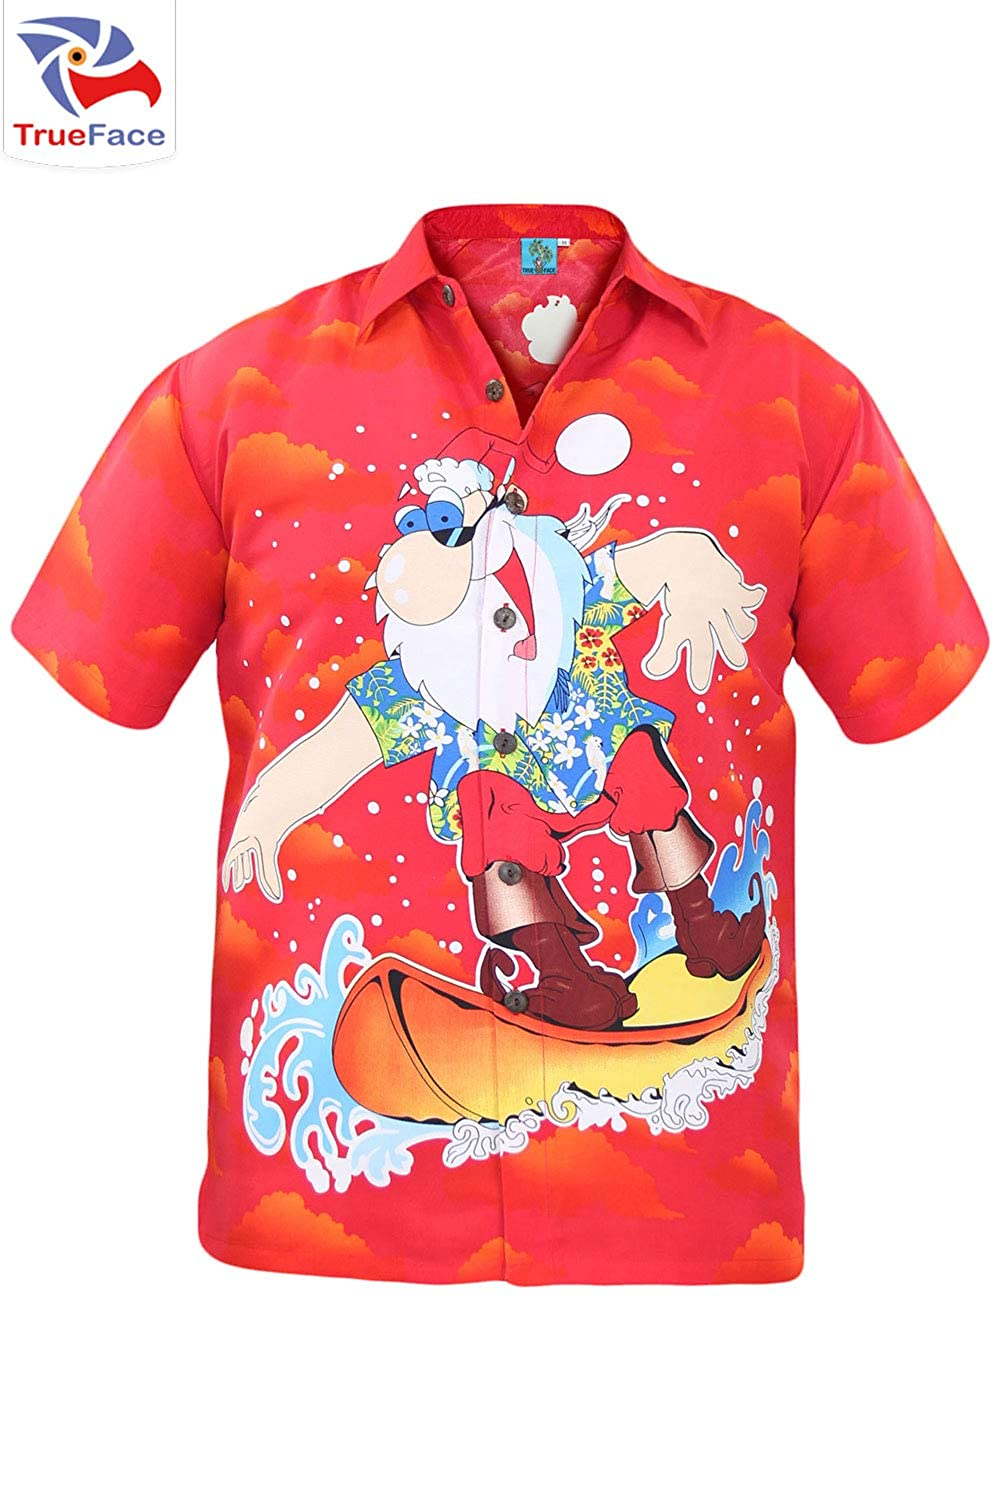 Medium XL Large 2XL,3XL Mens Hawaiian Christmas Shirts Boys Xmas Casual Button Down Short Sleeve Top Beach Holiday T Shirt for Men Available in Sizes Small